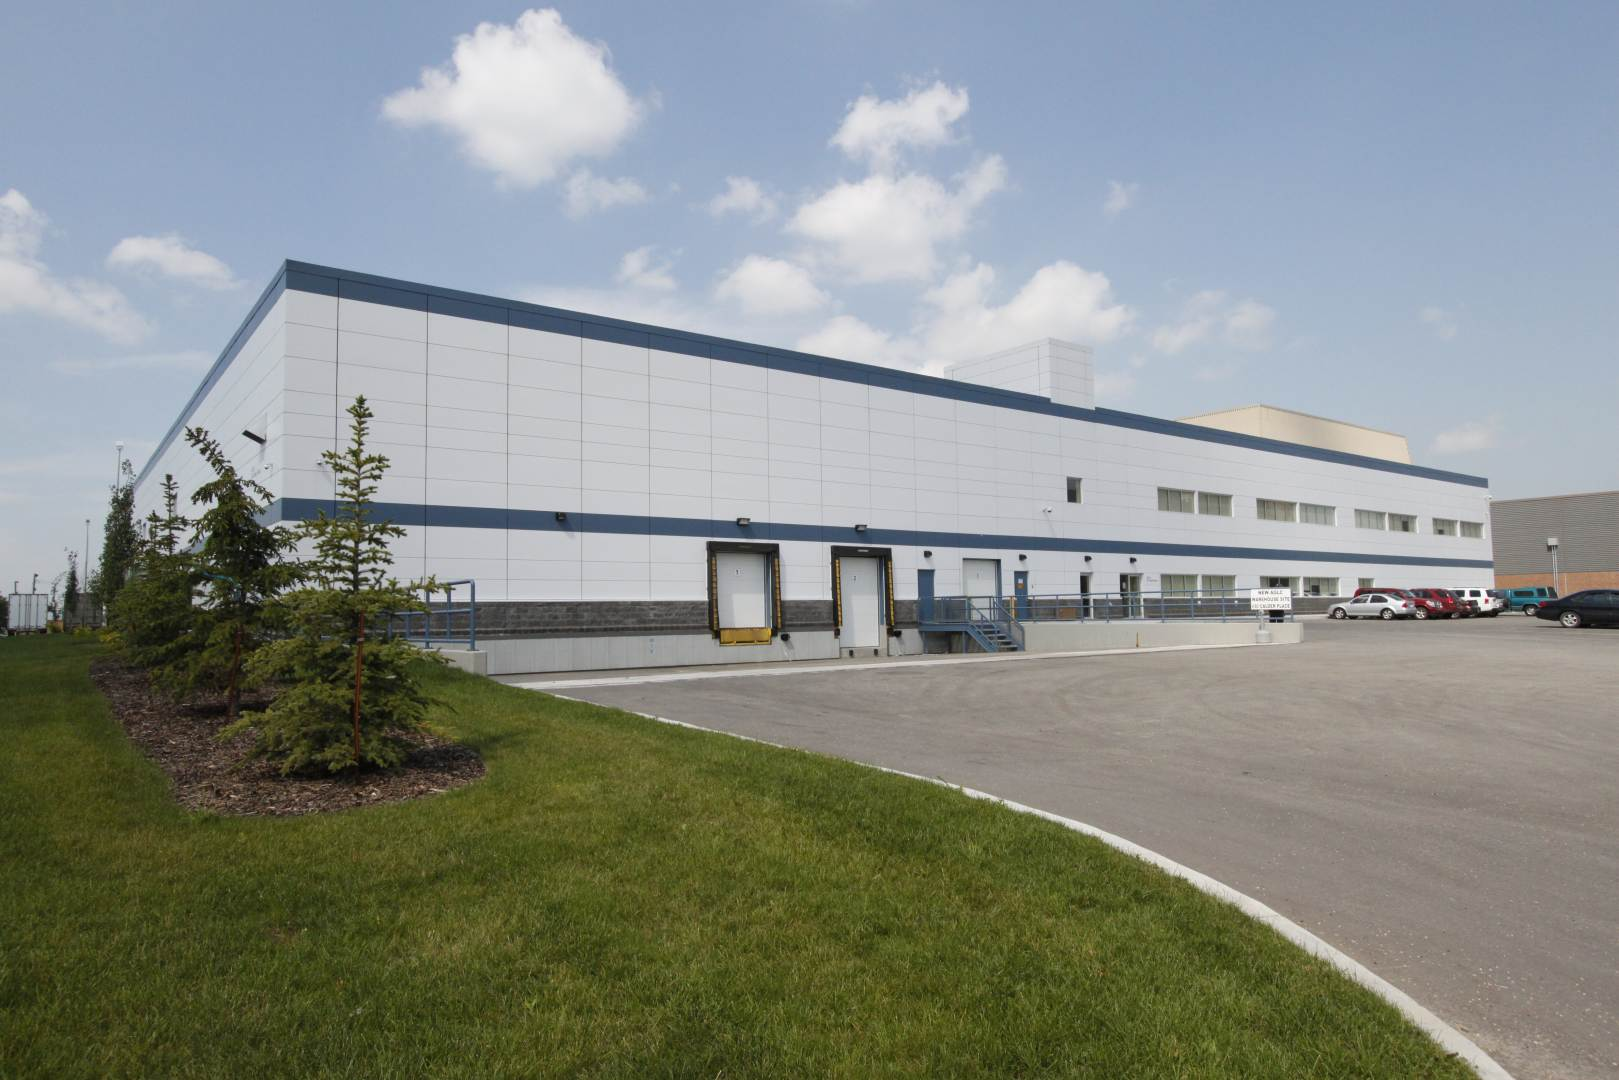 Alberta Gaming and Liquor Commission Warehouse